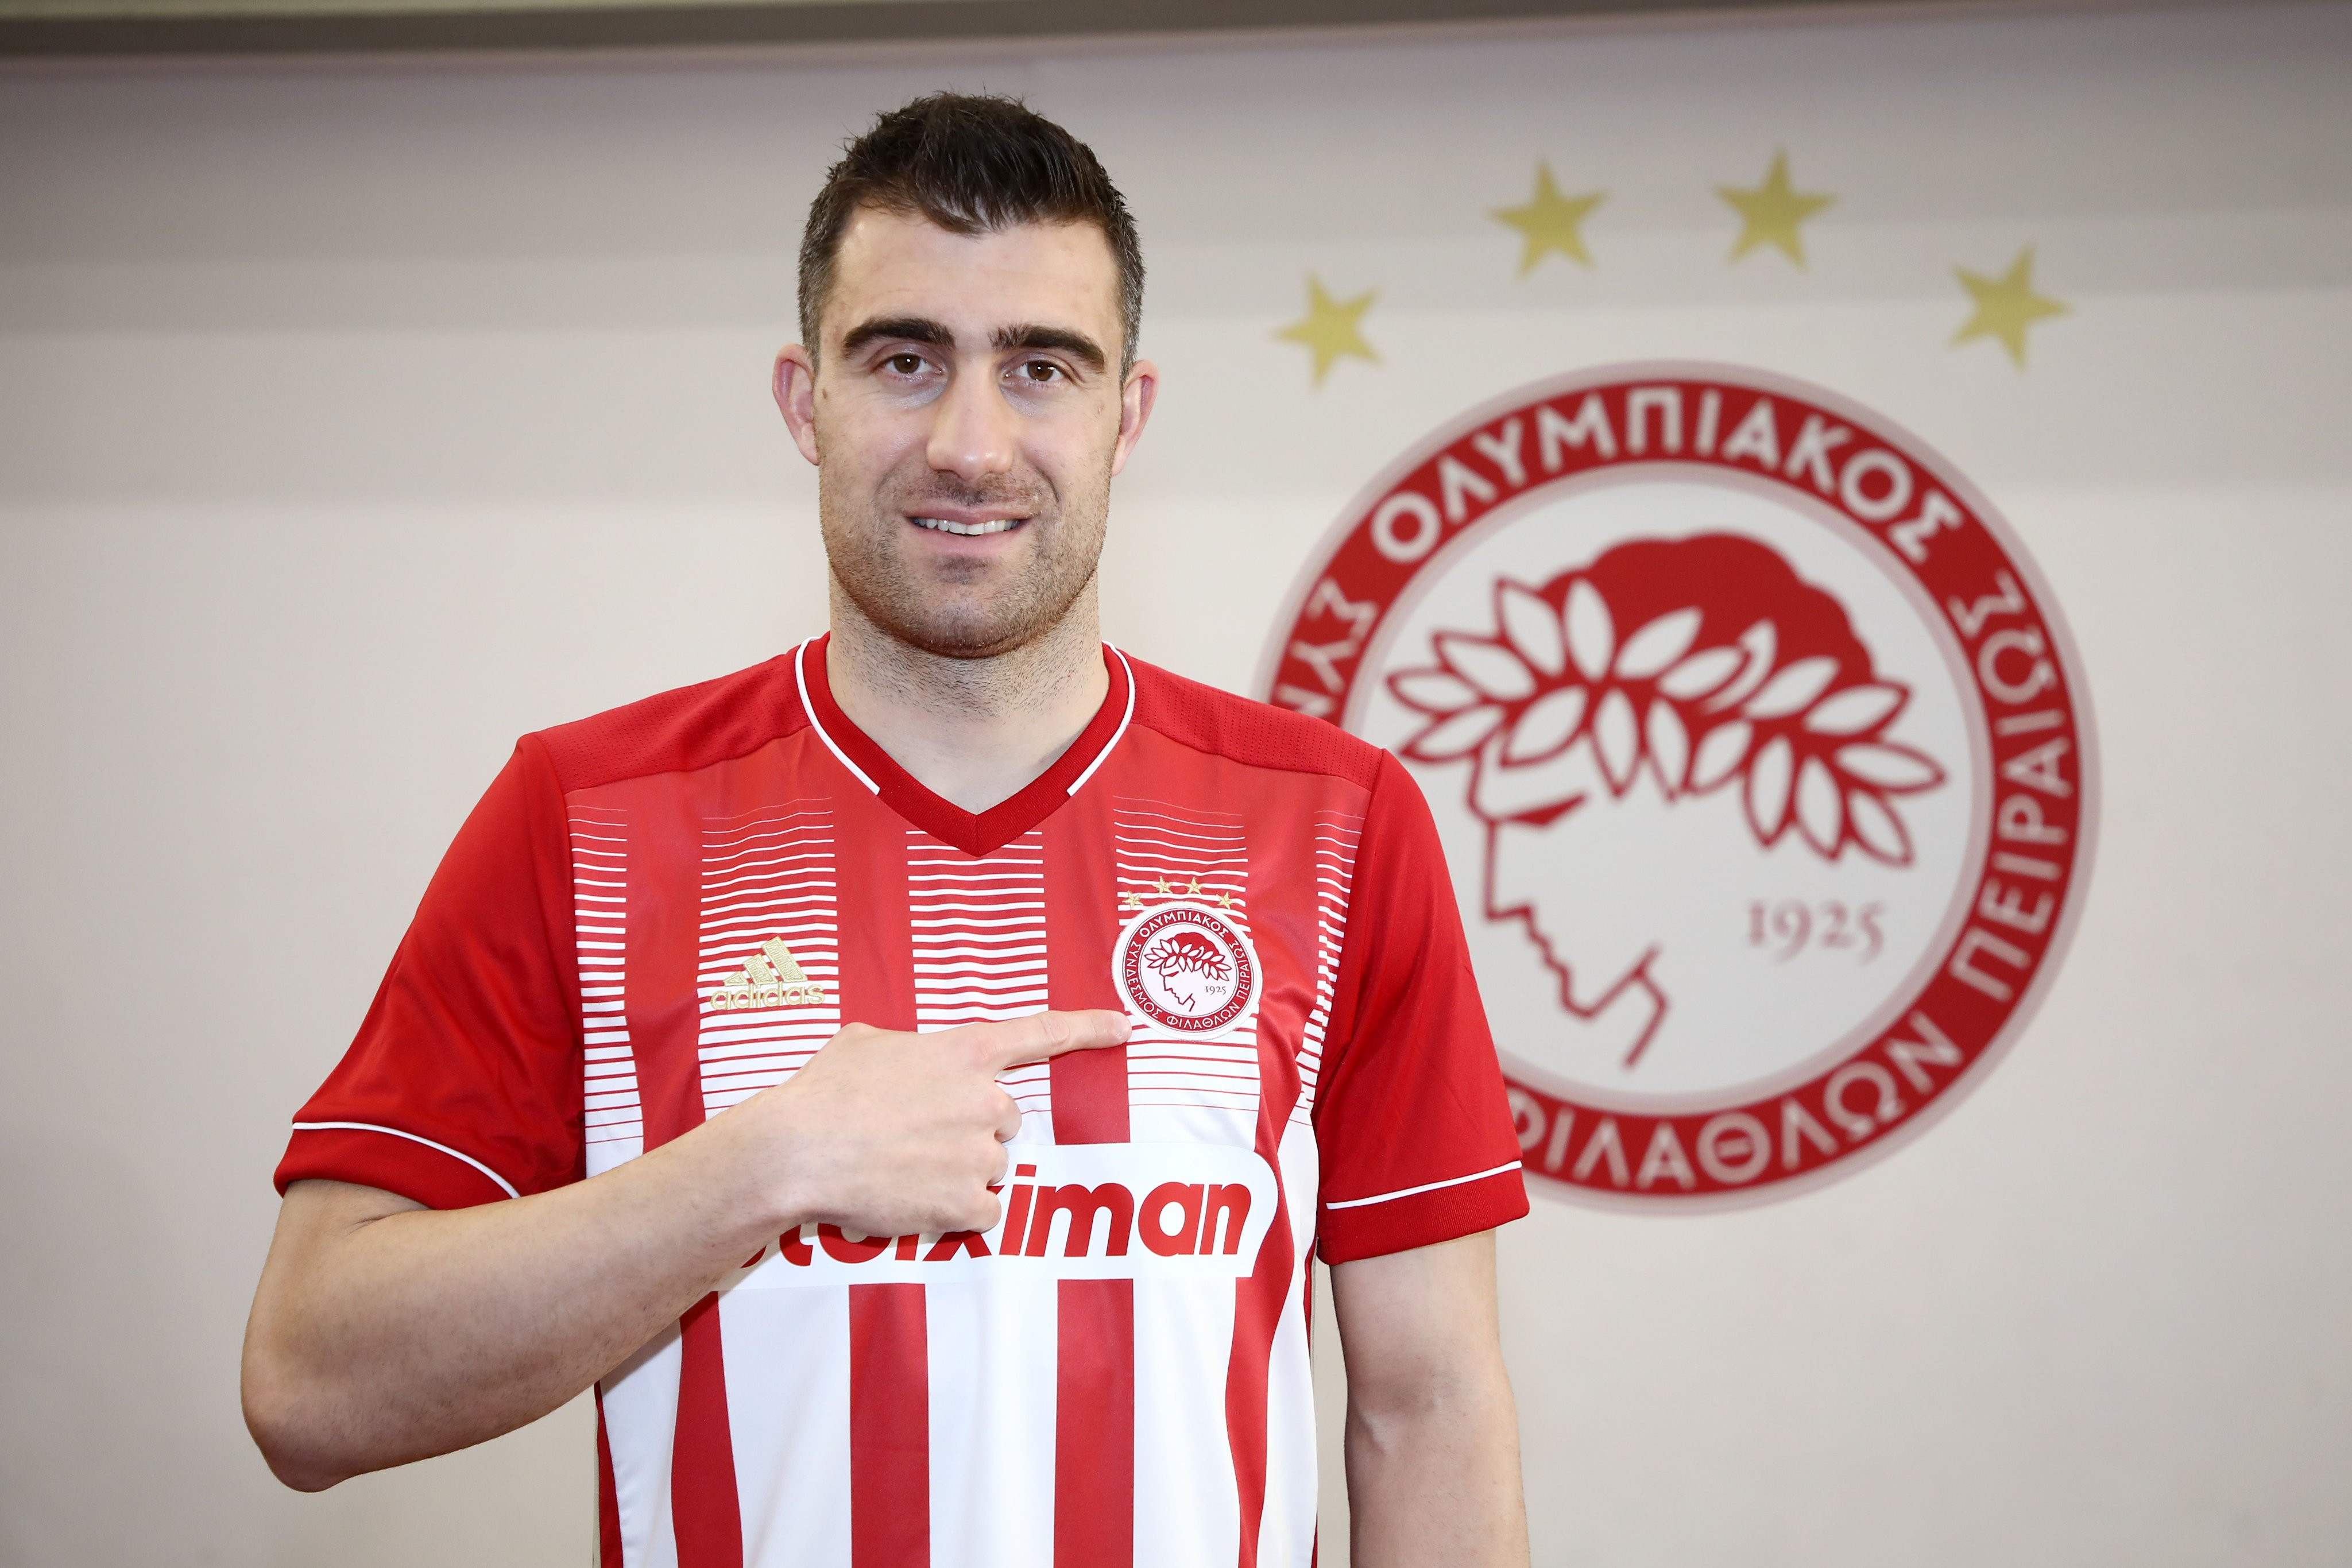 Ex-Arsenal defender, Sokratis Papastathopoulos joins Olympiacos on free transfer after Gunners contract was terminated (photos)